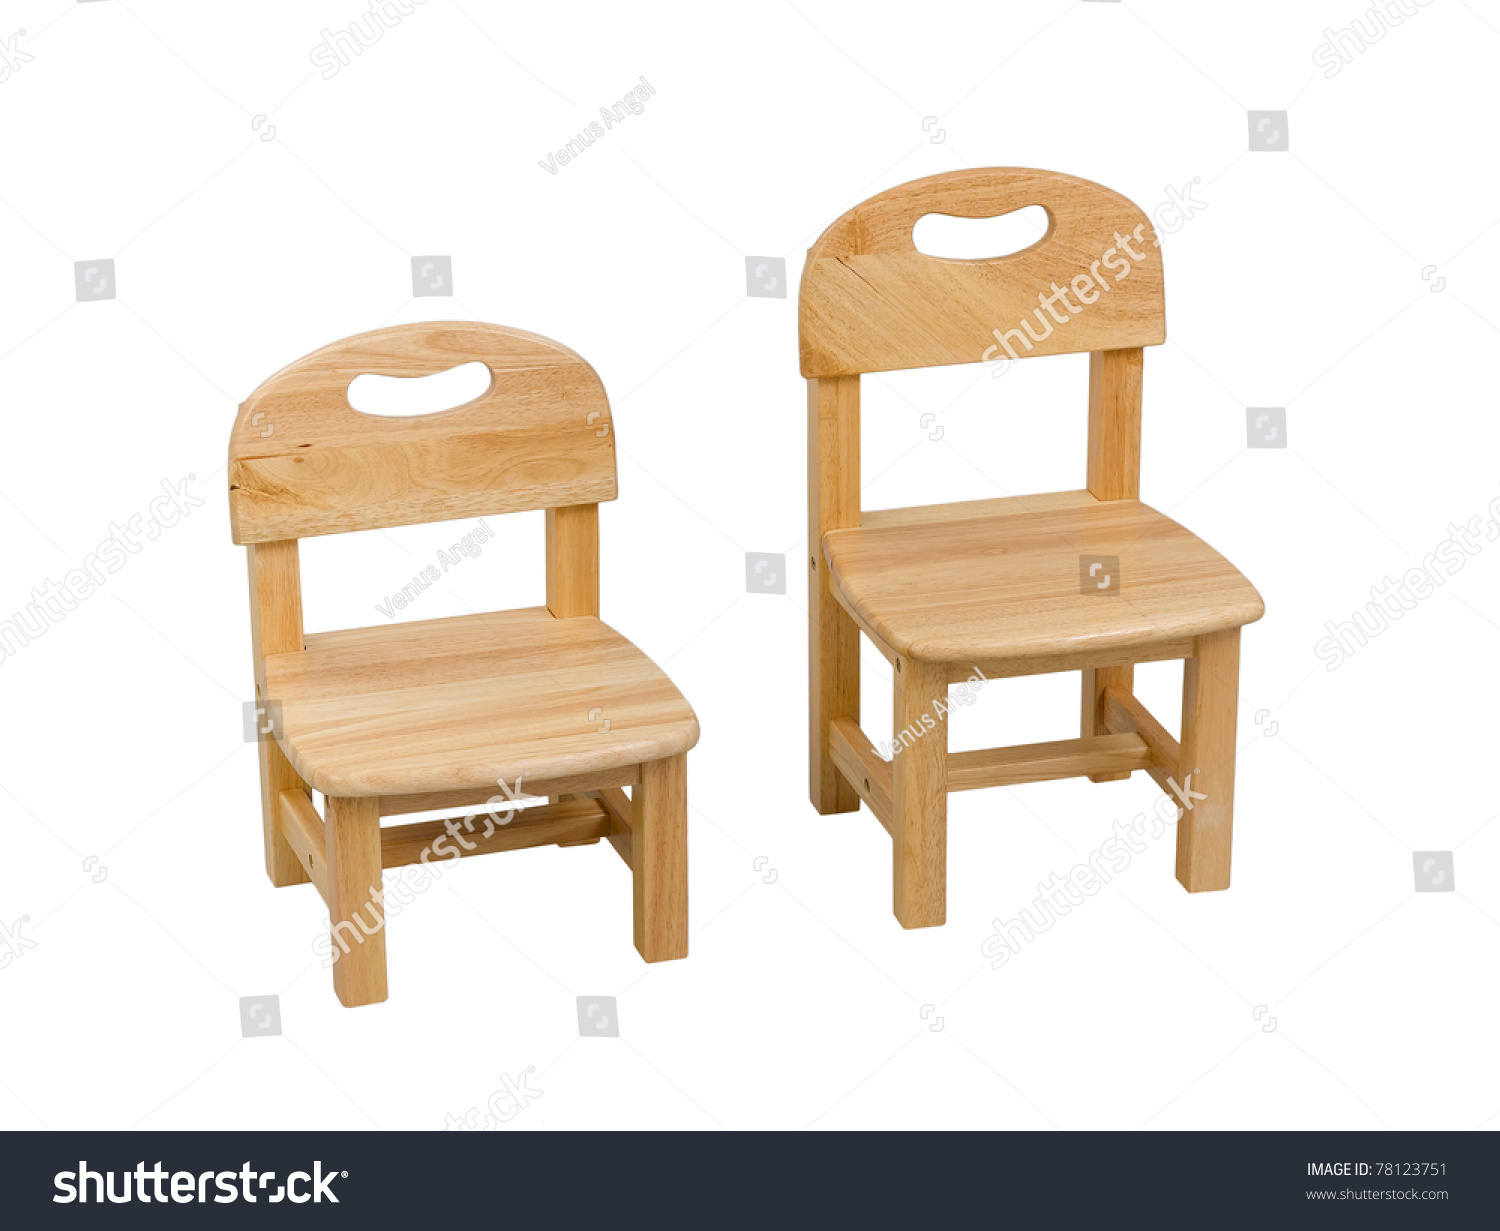 A Small Wooden Chair For Kid